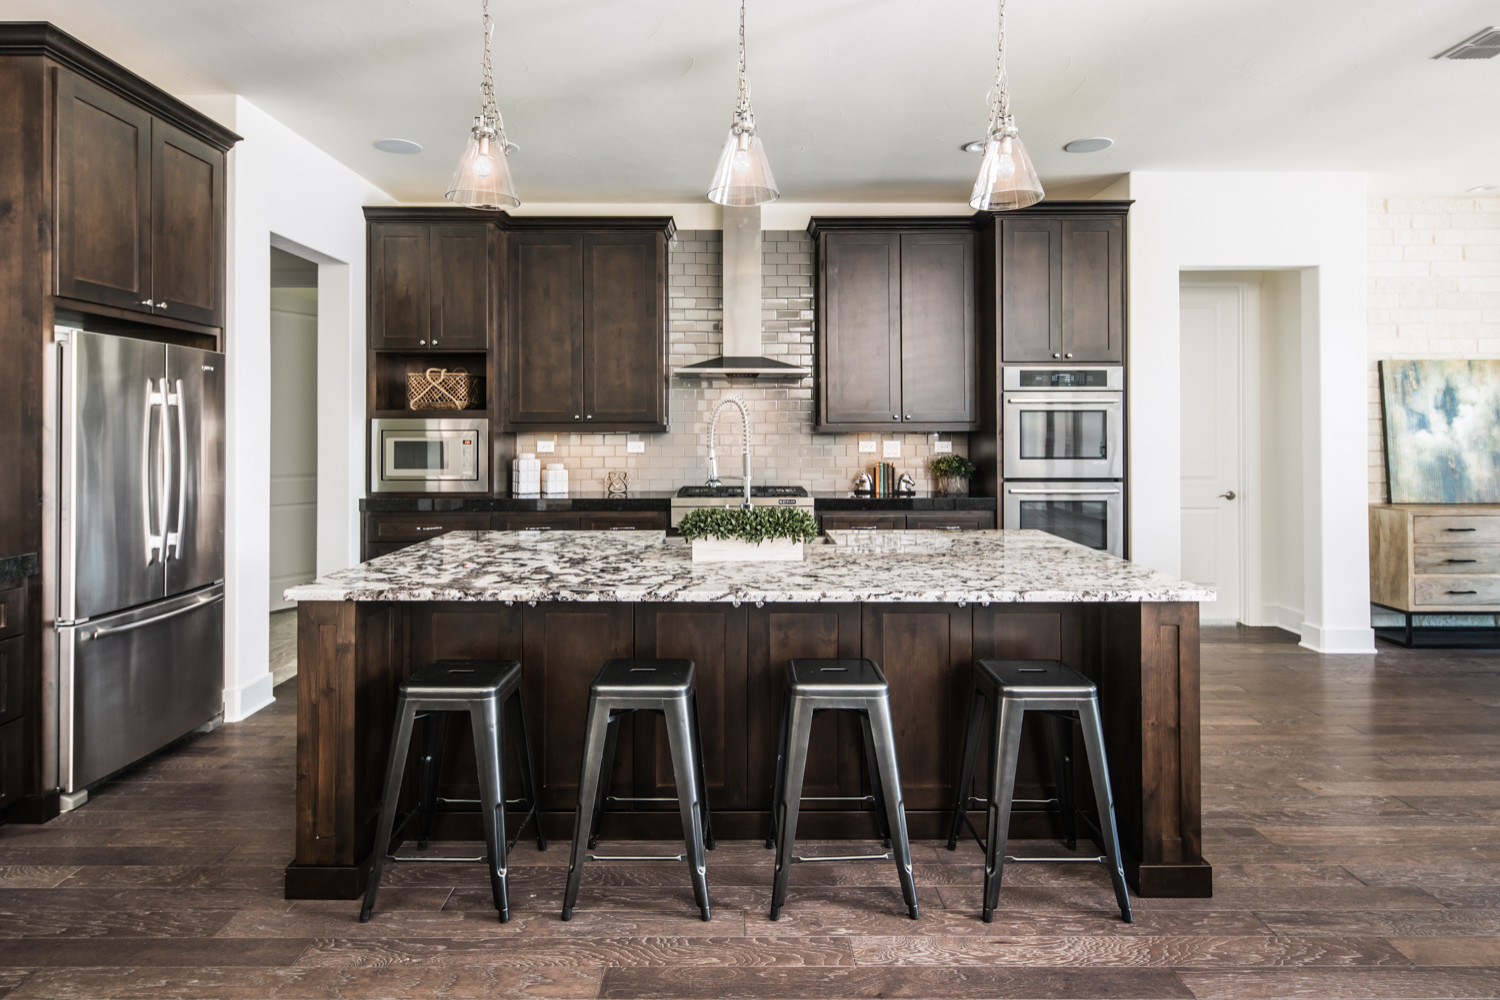 with brown cabinets and gray backsplash